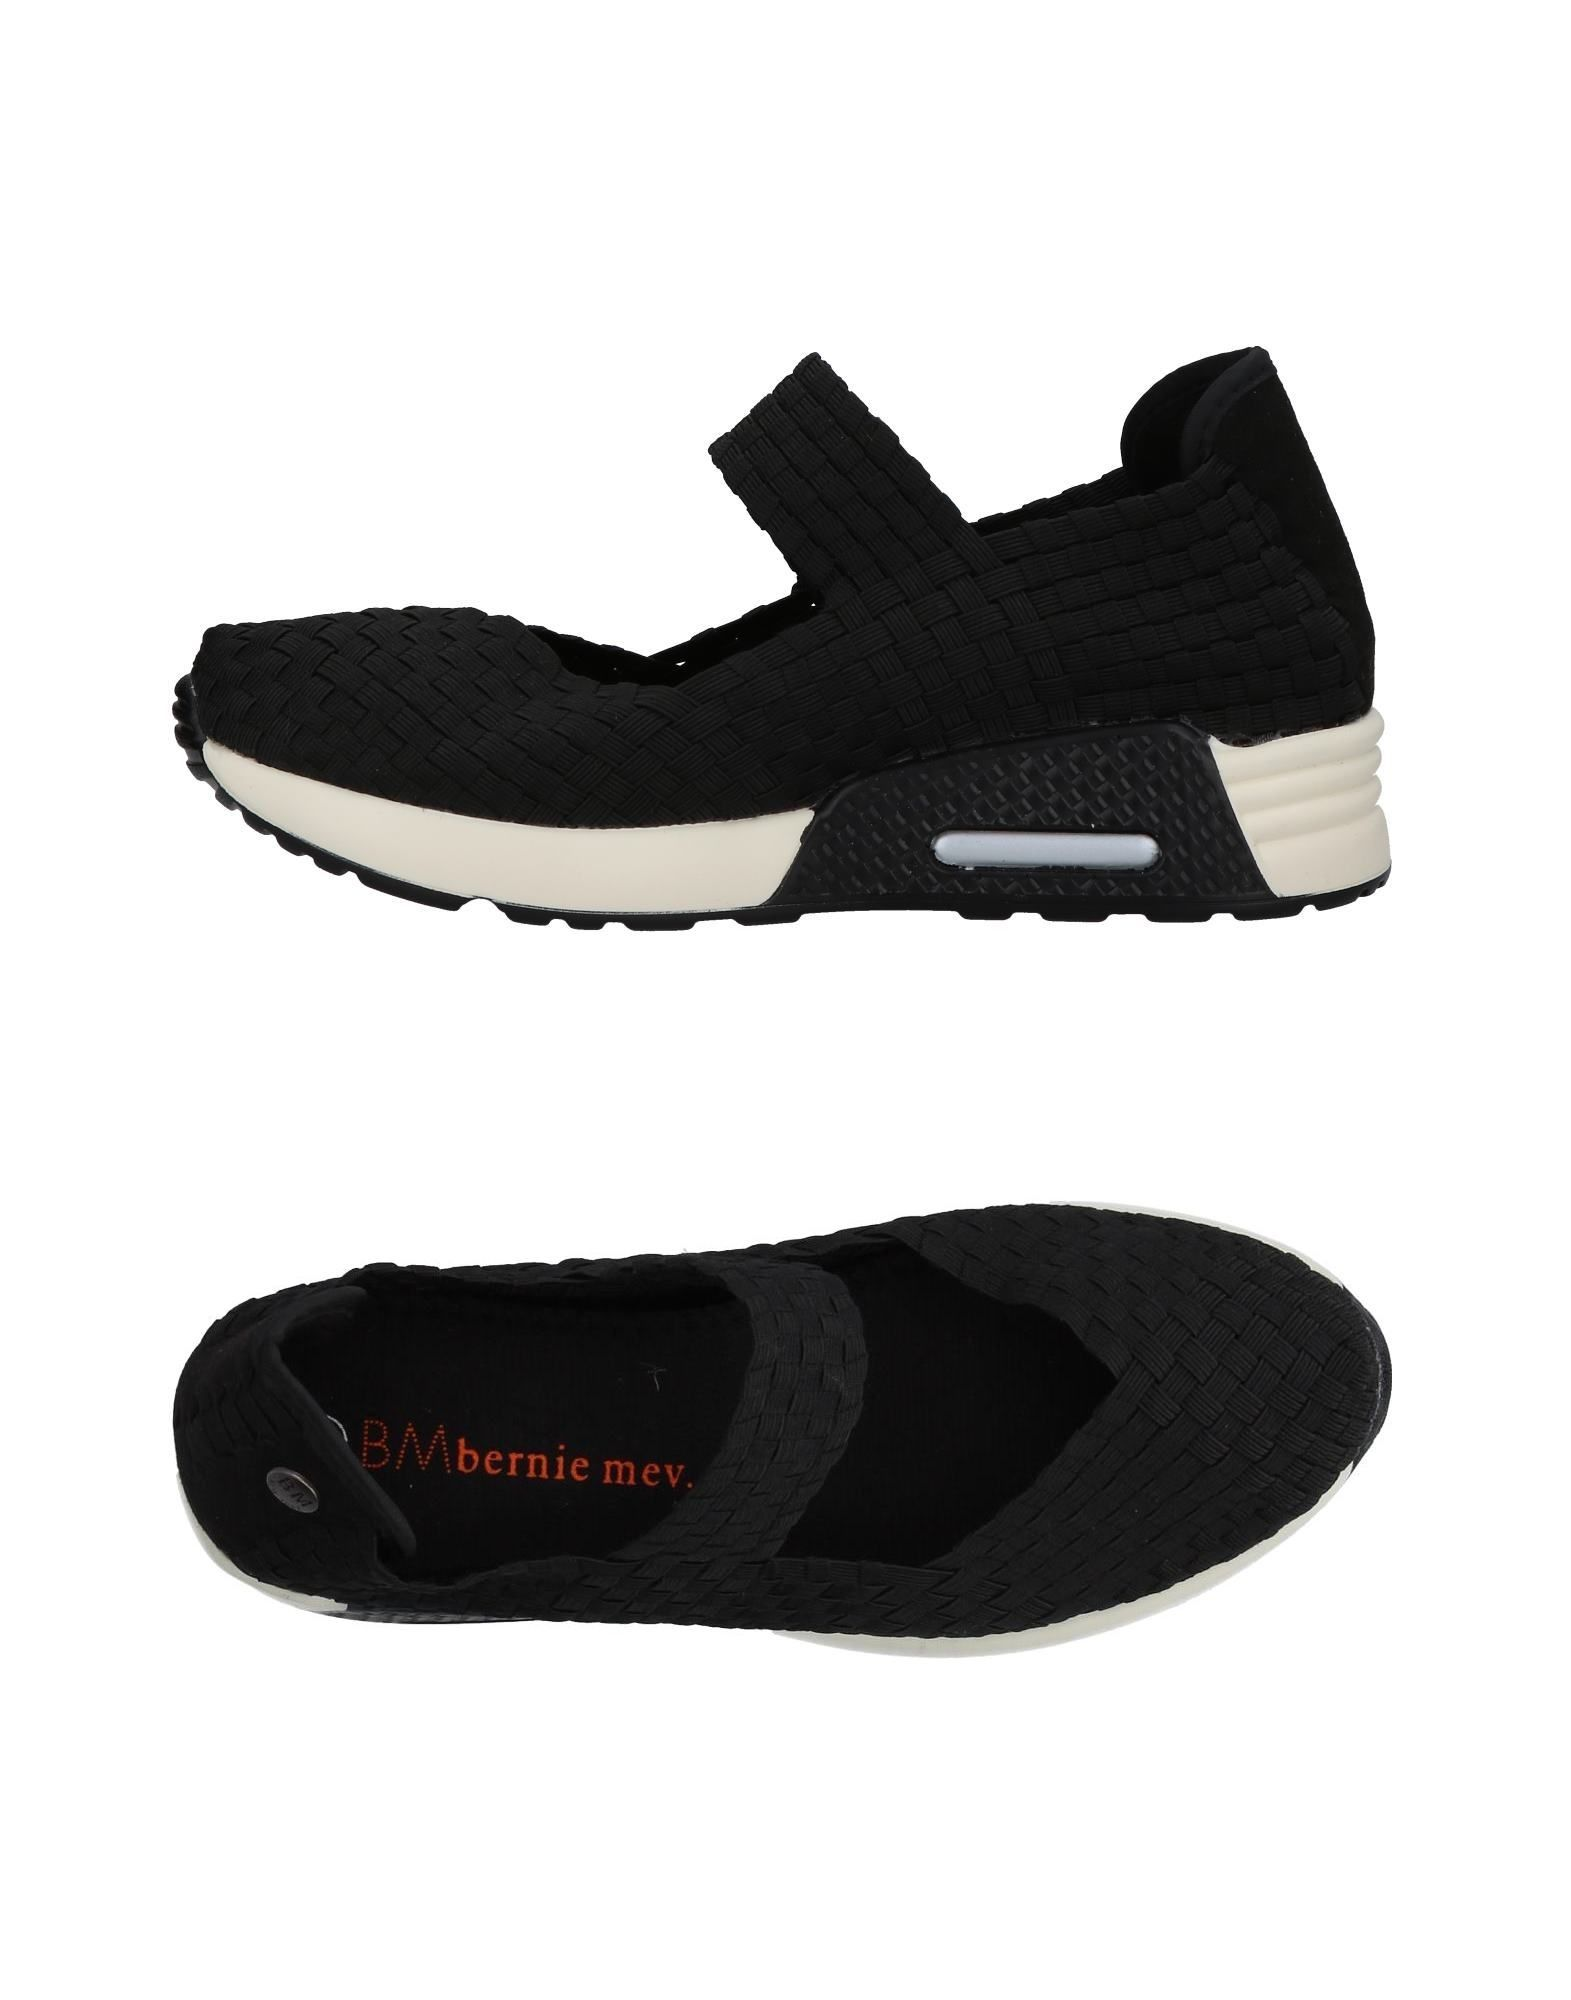 BERNIE MEV. Sneakers. no appliqués, solid color, elasticized gores, round toeline, flat, fully lined, rubber cleated sole. Textile fibers